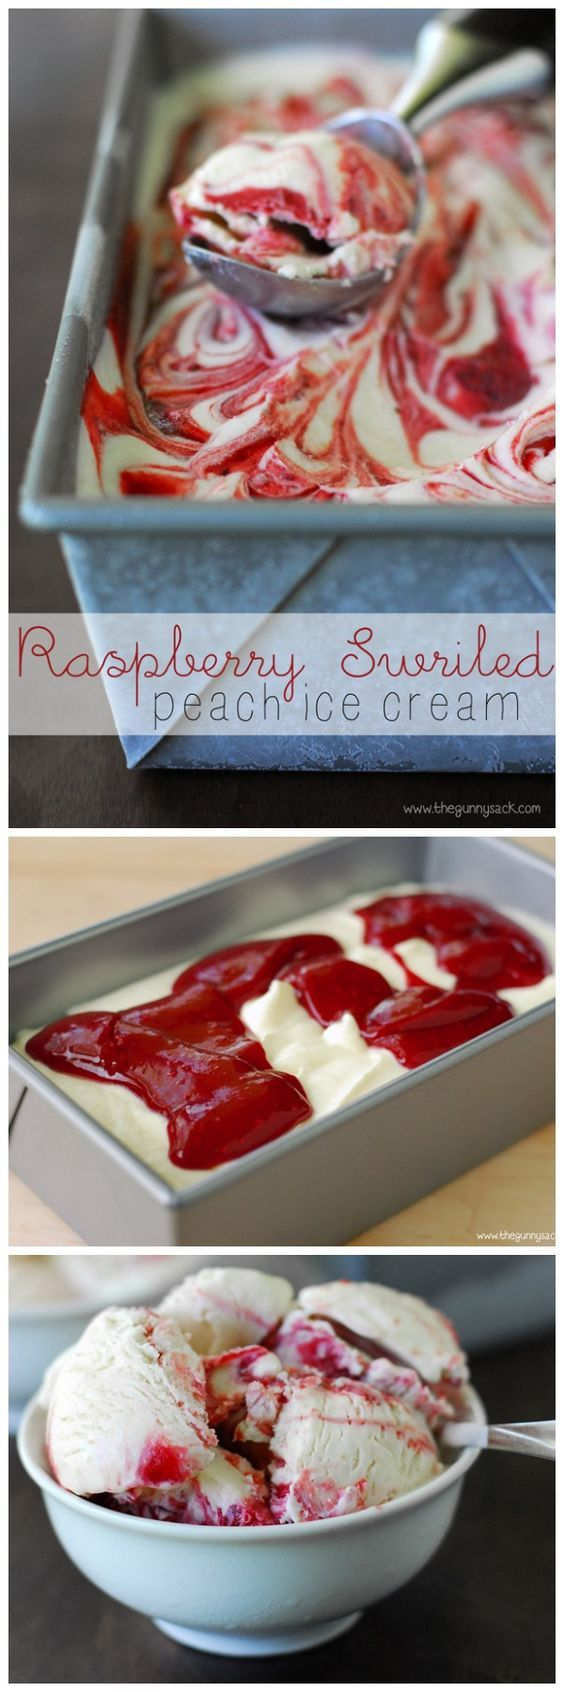 Homemade Raspberry Swirled Peach Ice Cream can be made with ONLY 5 INGREDIENTS and NO ICE CREAM MACHINE!